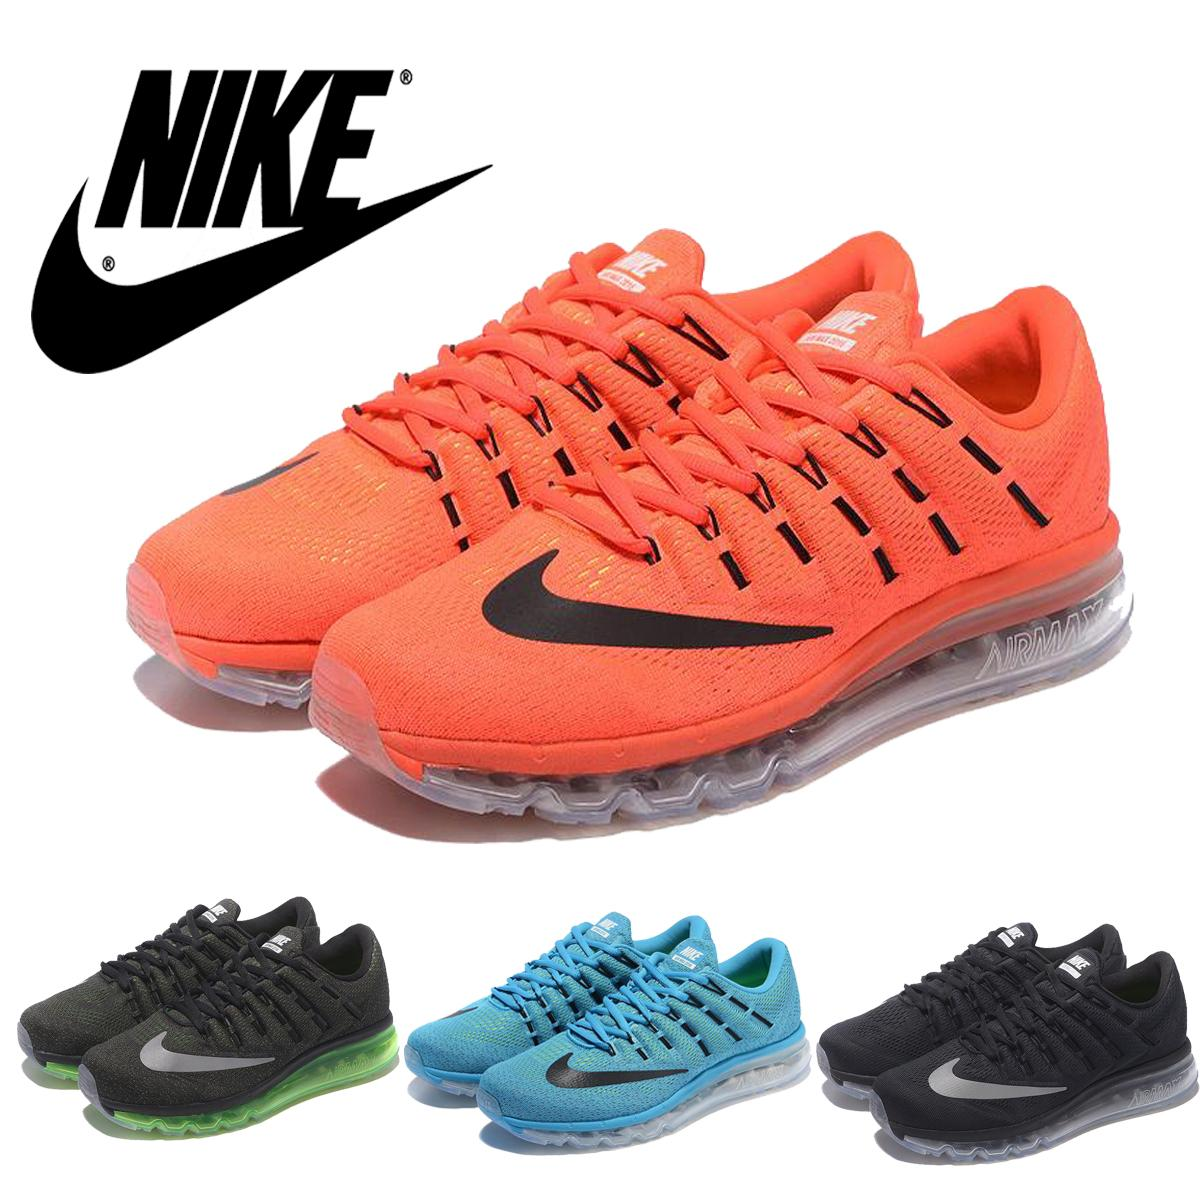 wholesale dealer 5dc78 6aa44 ... Nike Airmax Max2016 Maxes For Men Sports Shoe Sneakers Best Running  Shoes For Men Shoes For Sale From Bestsportcentre,  101.53  DHgate.Com